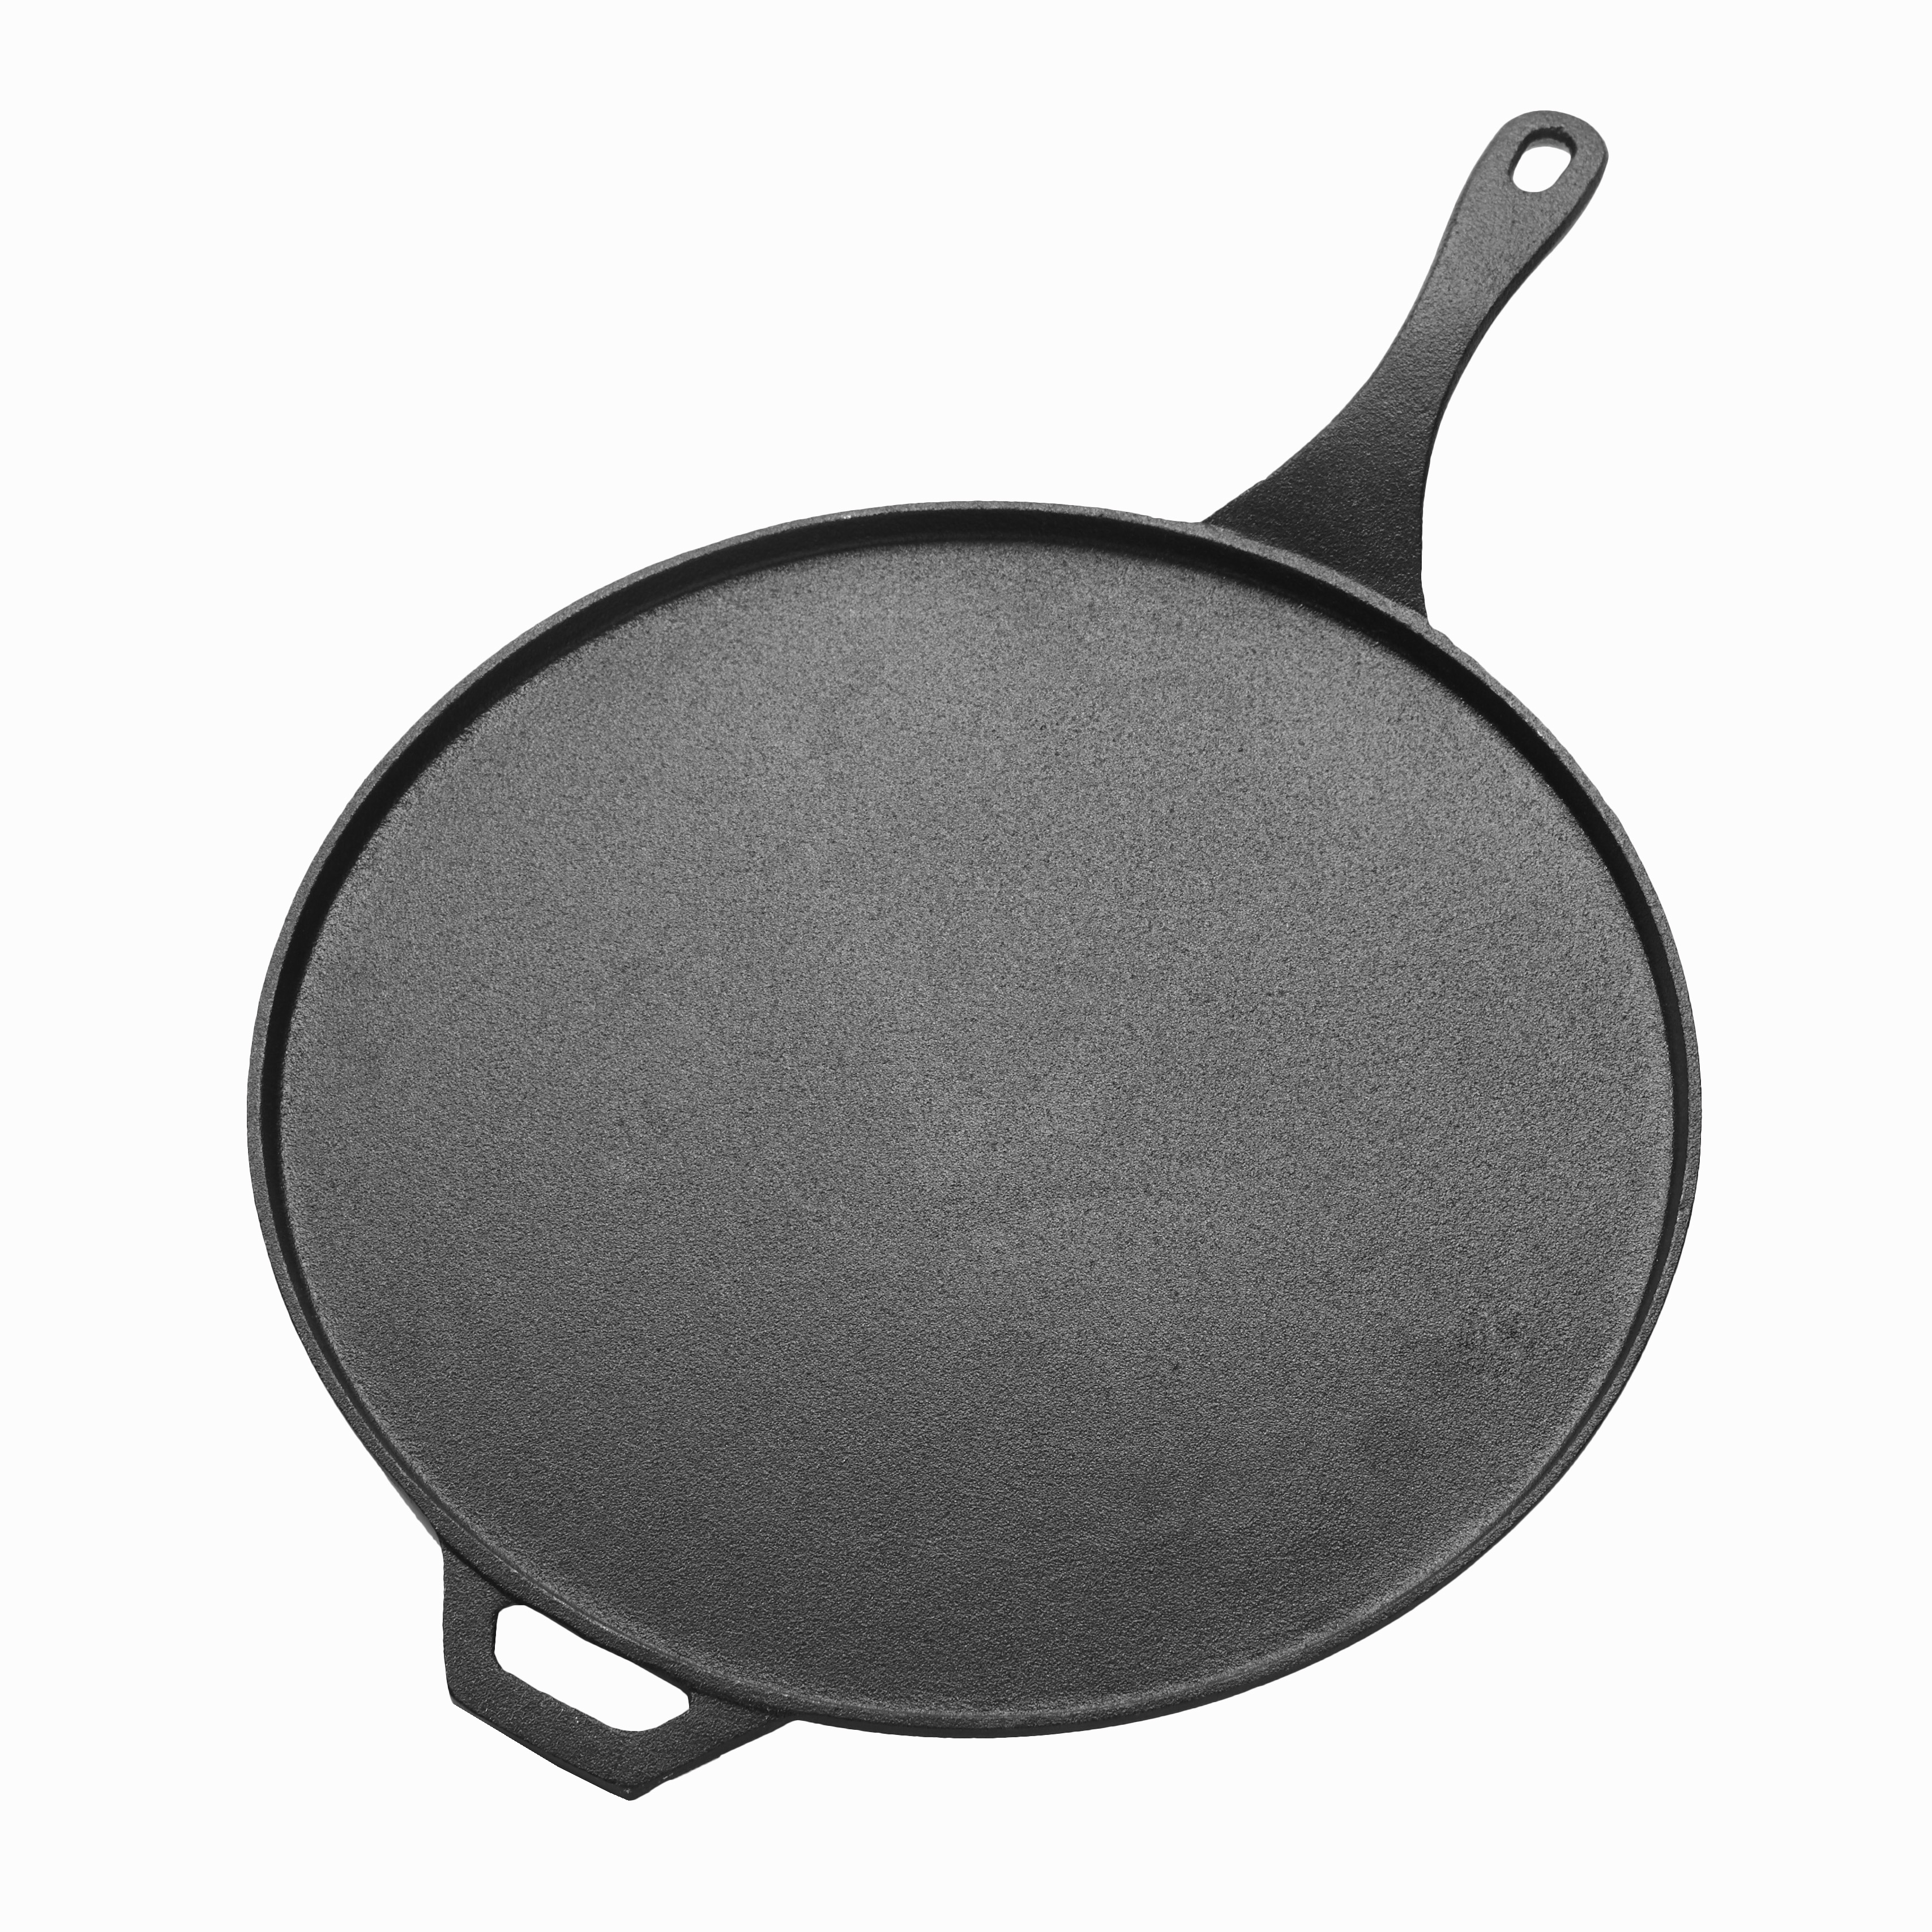 American Metalcraft CILP14 sizzle thermal platter